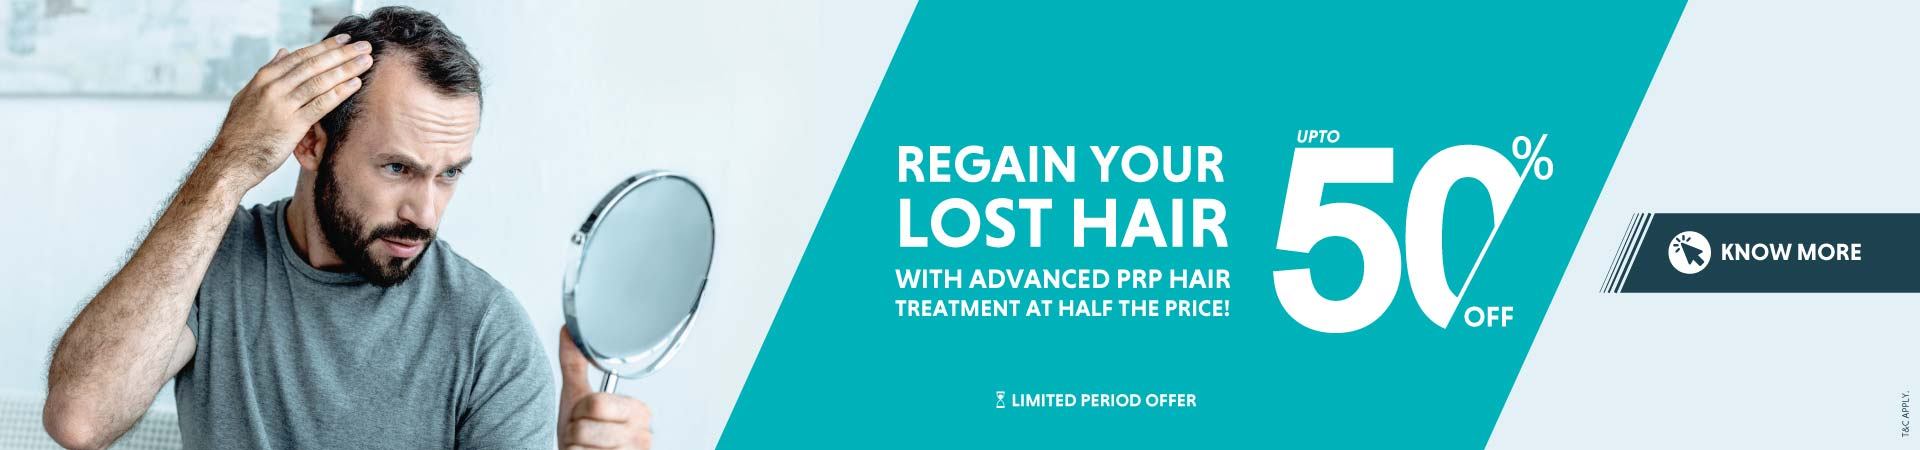 PRP hair regrowth treatment offer oliva clinic